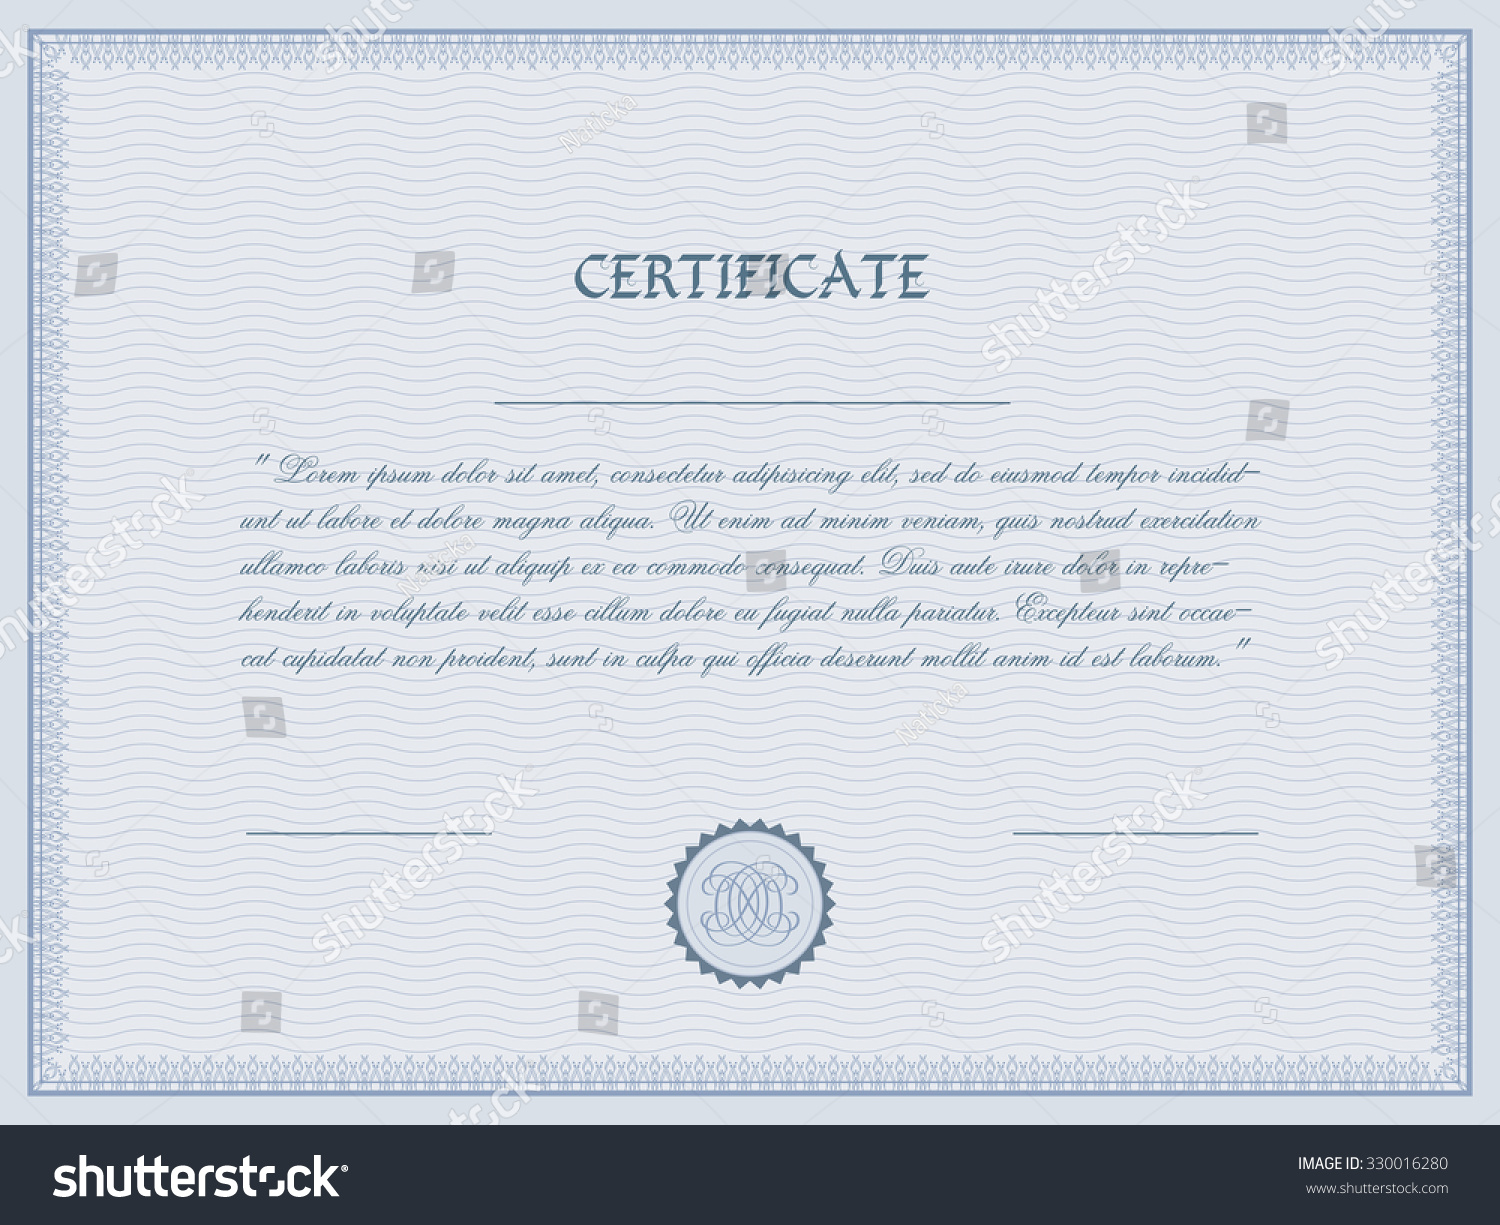 Certificate diploma template vector illustration stock vector certificate diploma template vector illustration yadclub Image collections